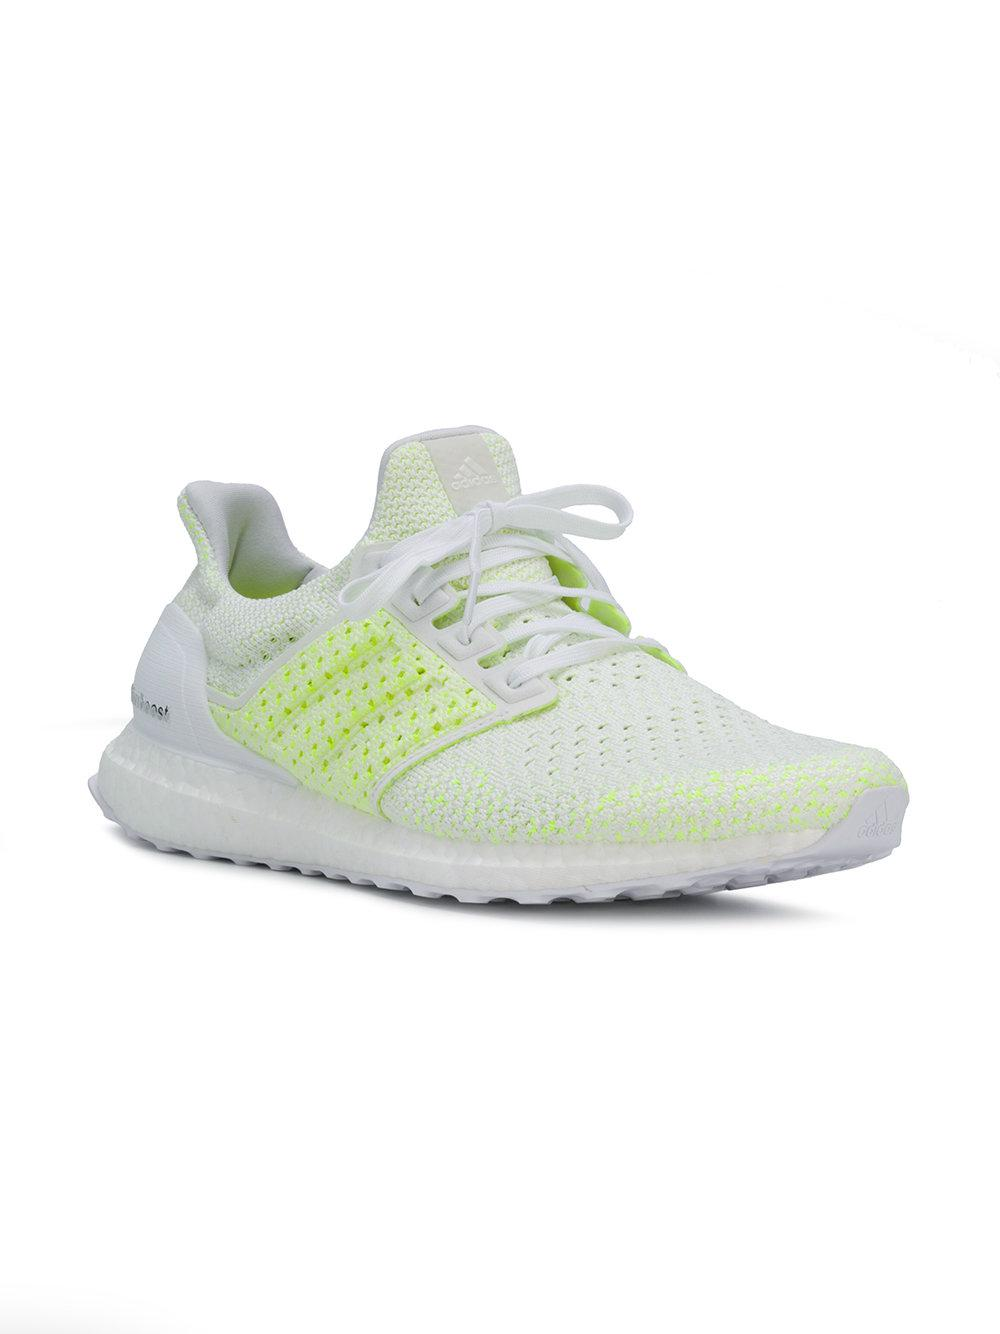 666ddfeee64db Lyst - adidas Ultraboost Clima Shoes in White for Men